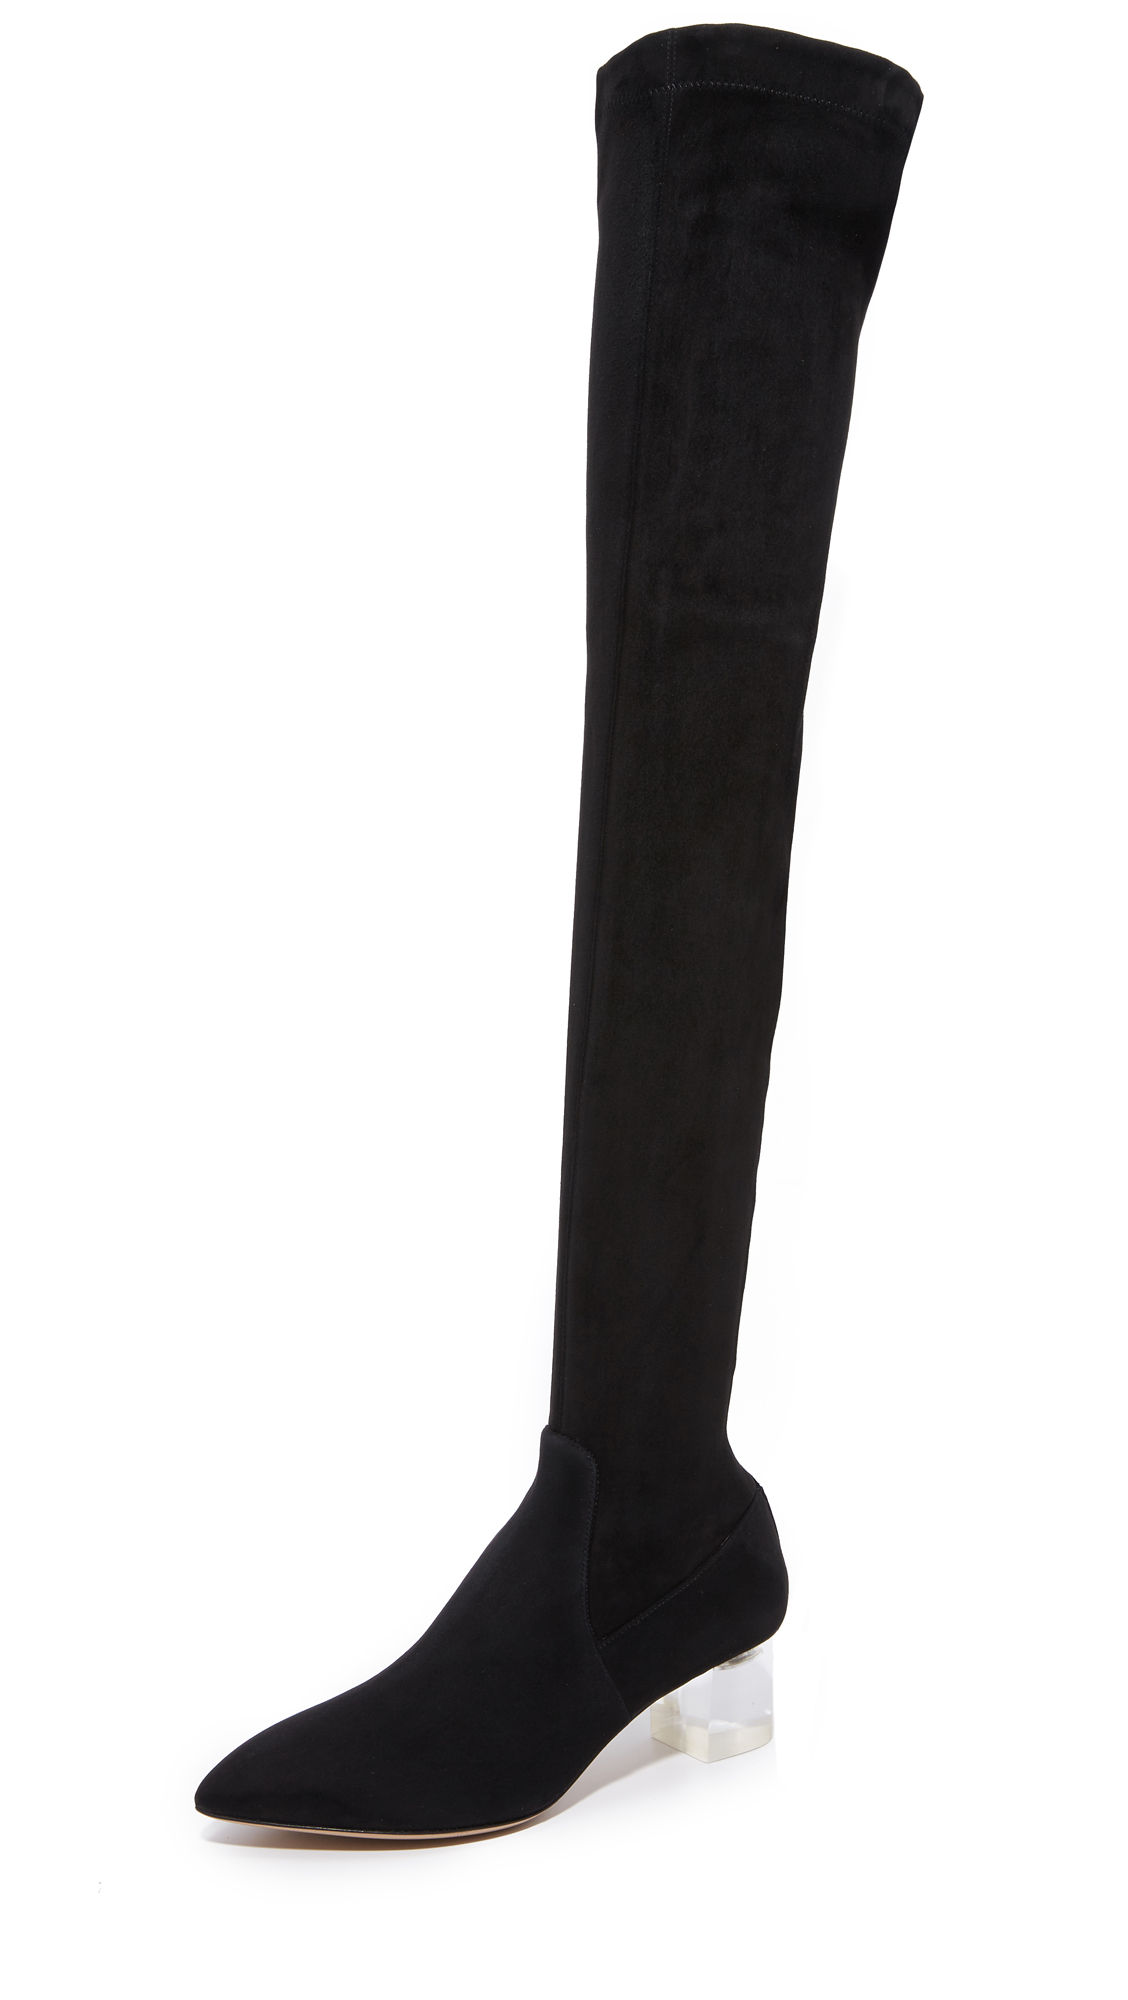 Charlotte Olympia Endless Boots - Black at Shopbop